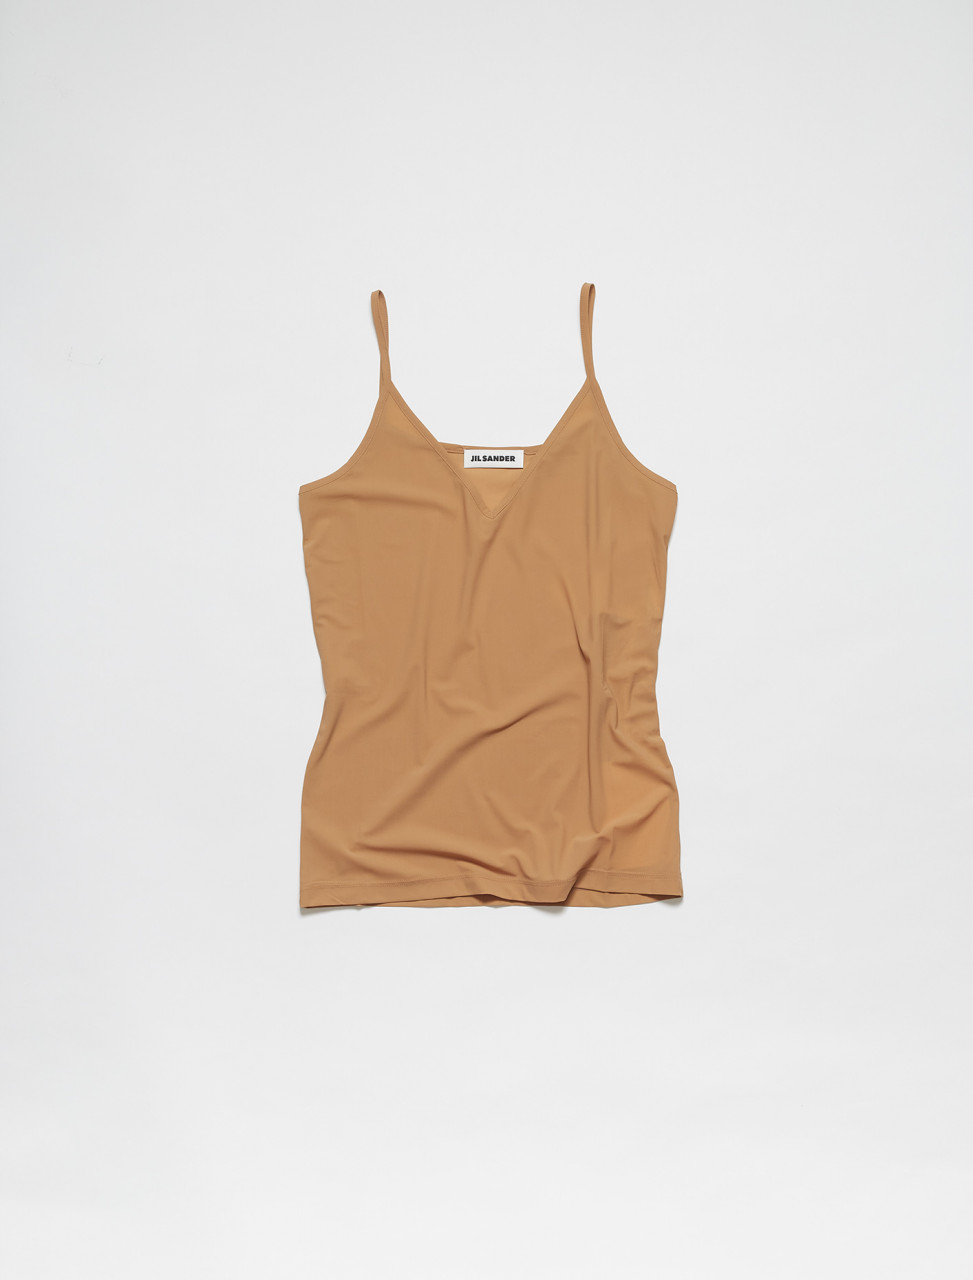 JSPS705046-WS477108-265 JIL SANDER TANK TOP IN MEDIUM BEIGE